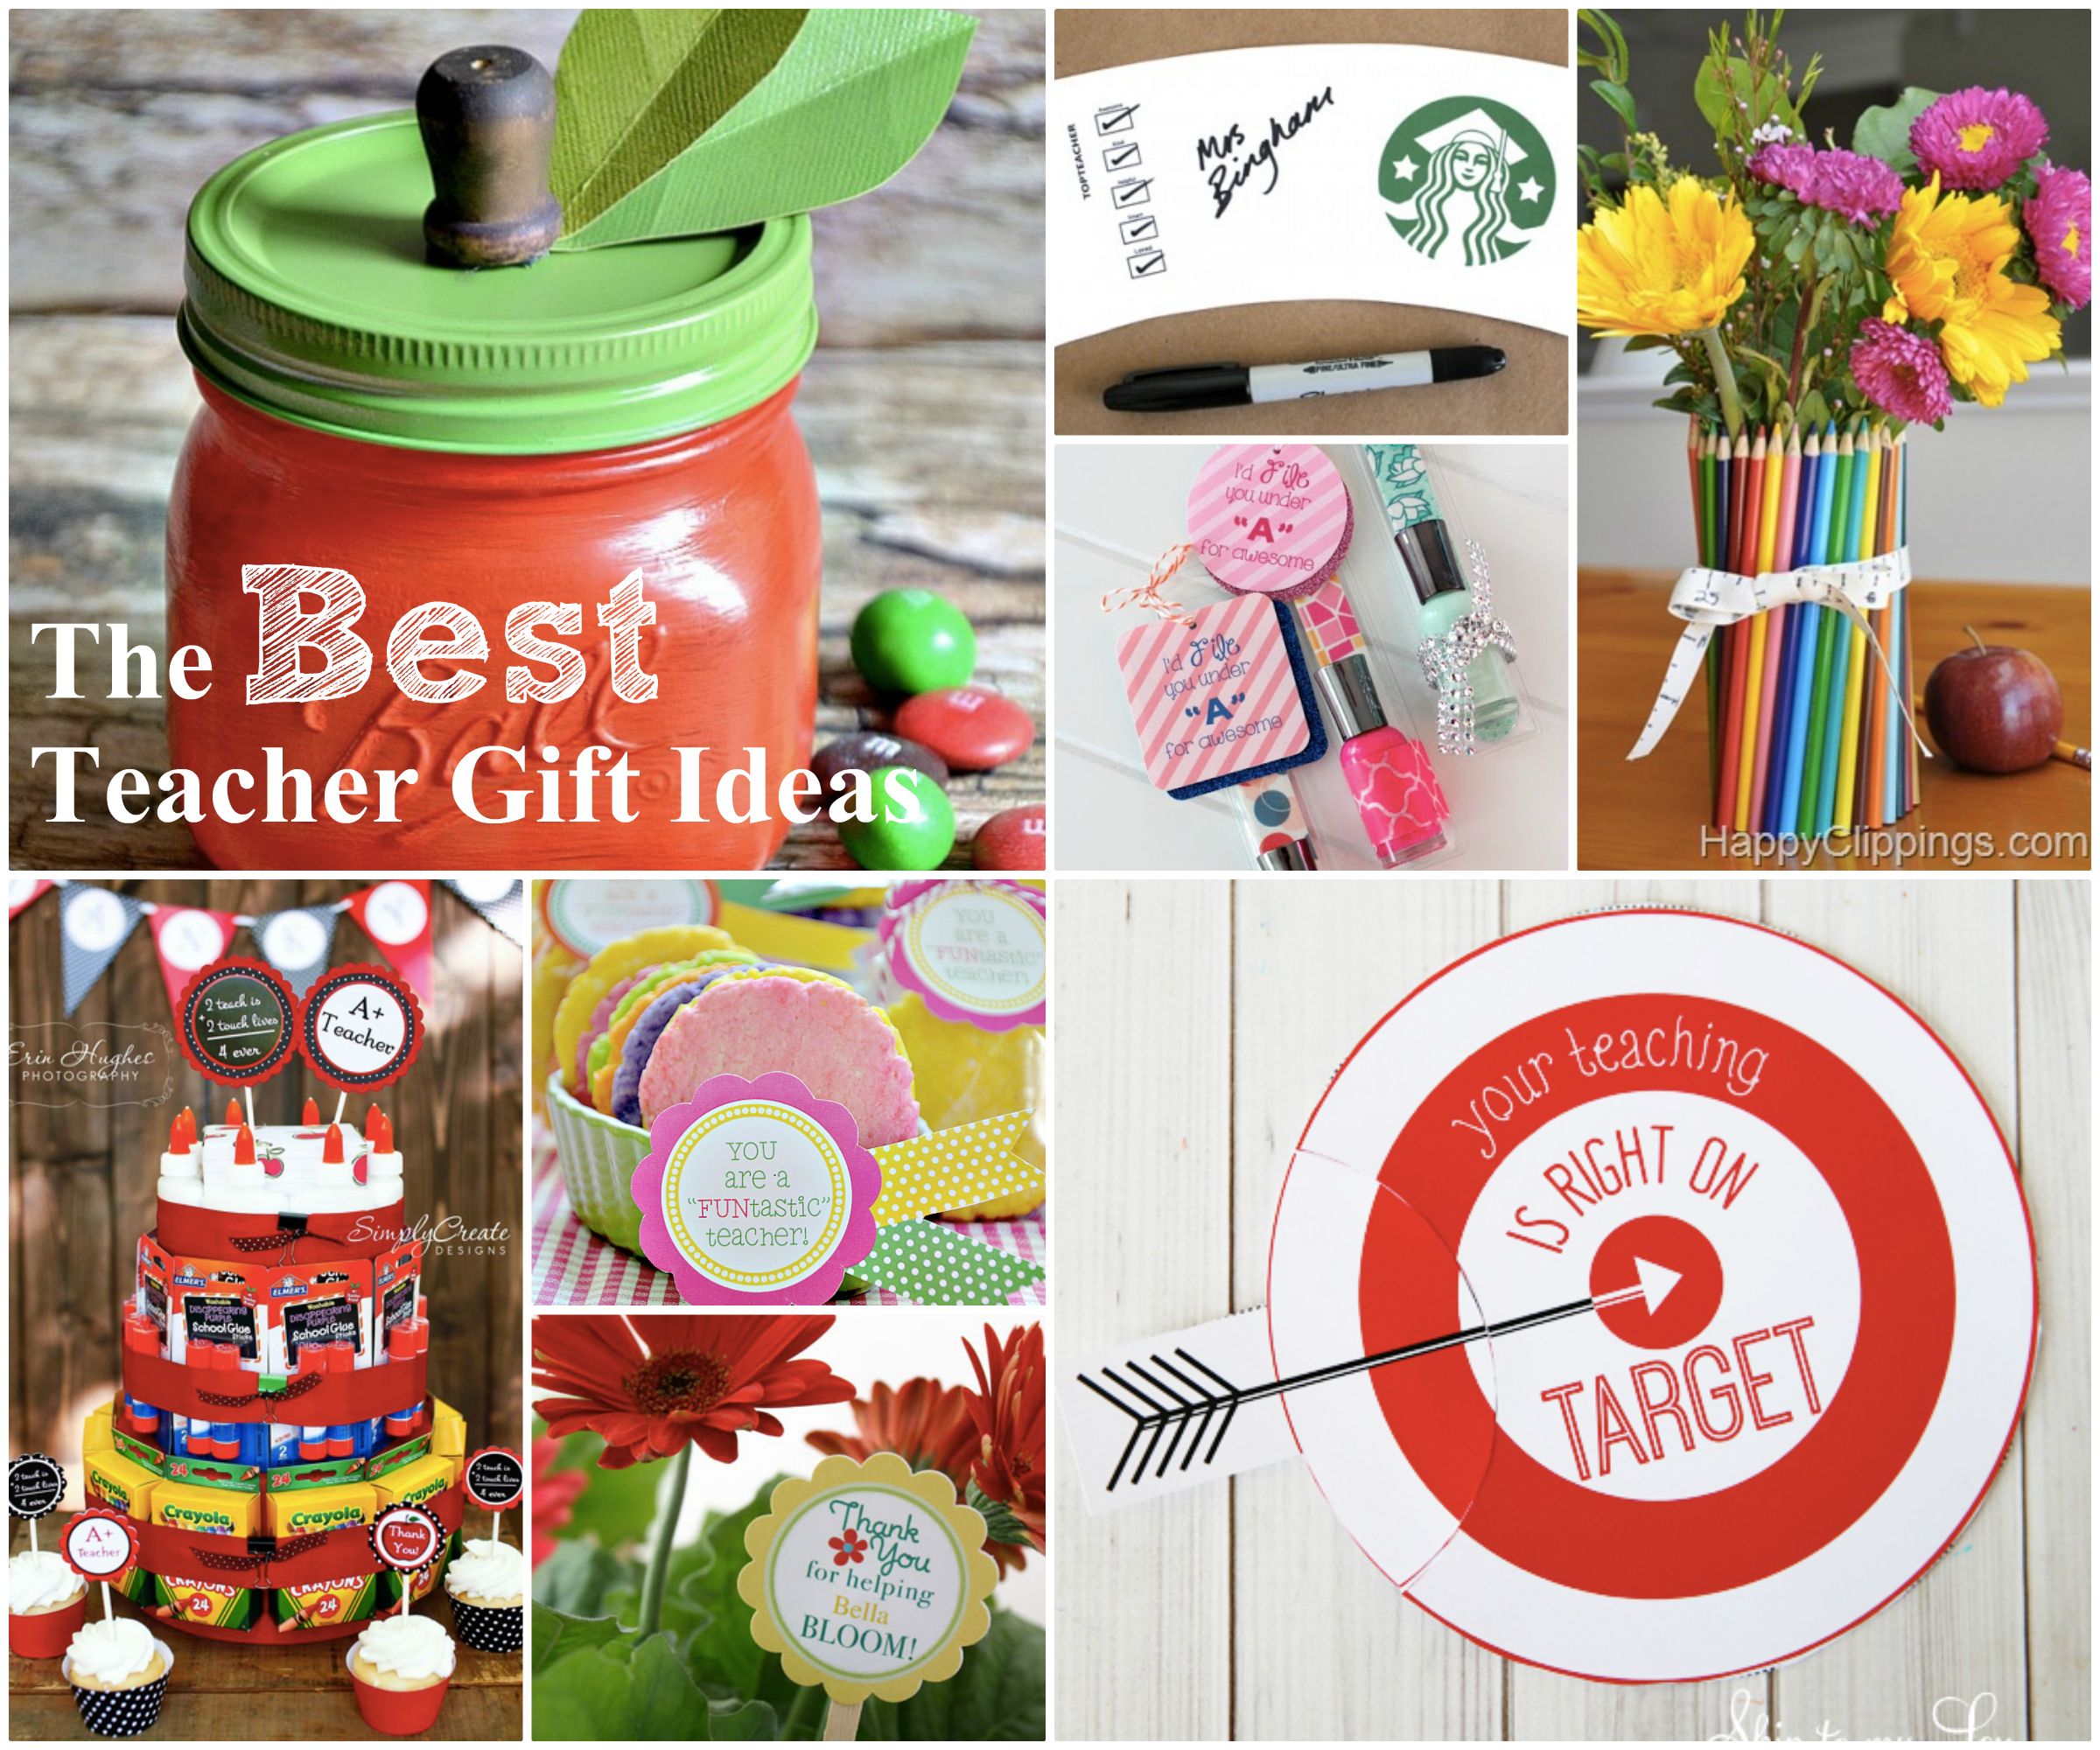 15 Of The Best Teacher Gift Ideas